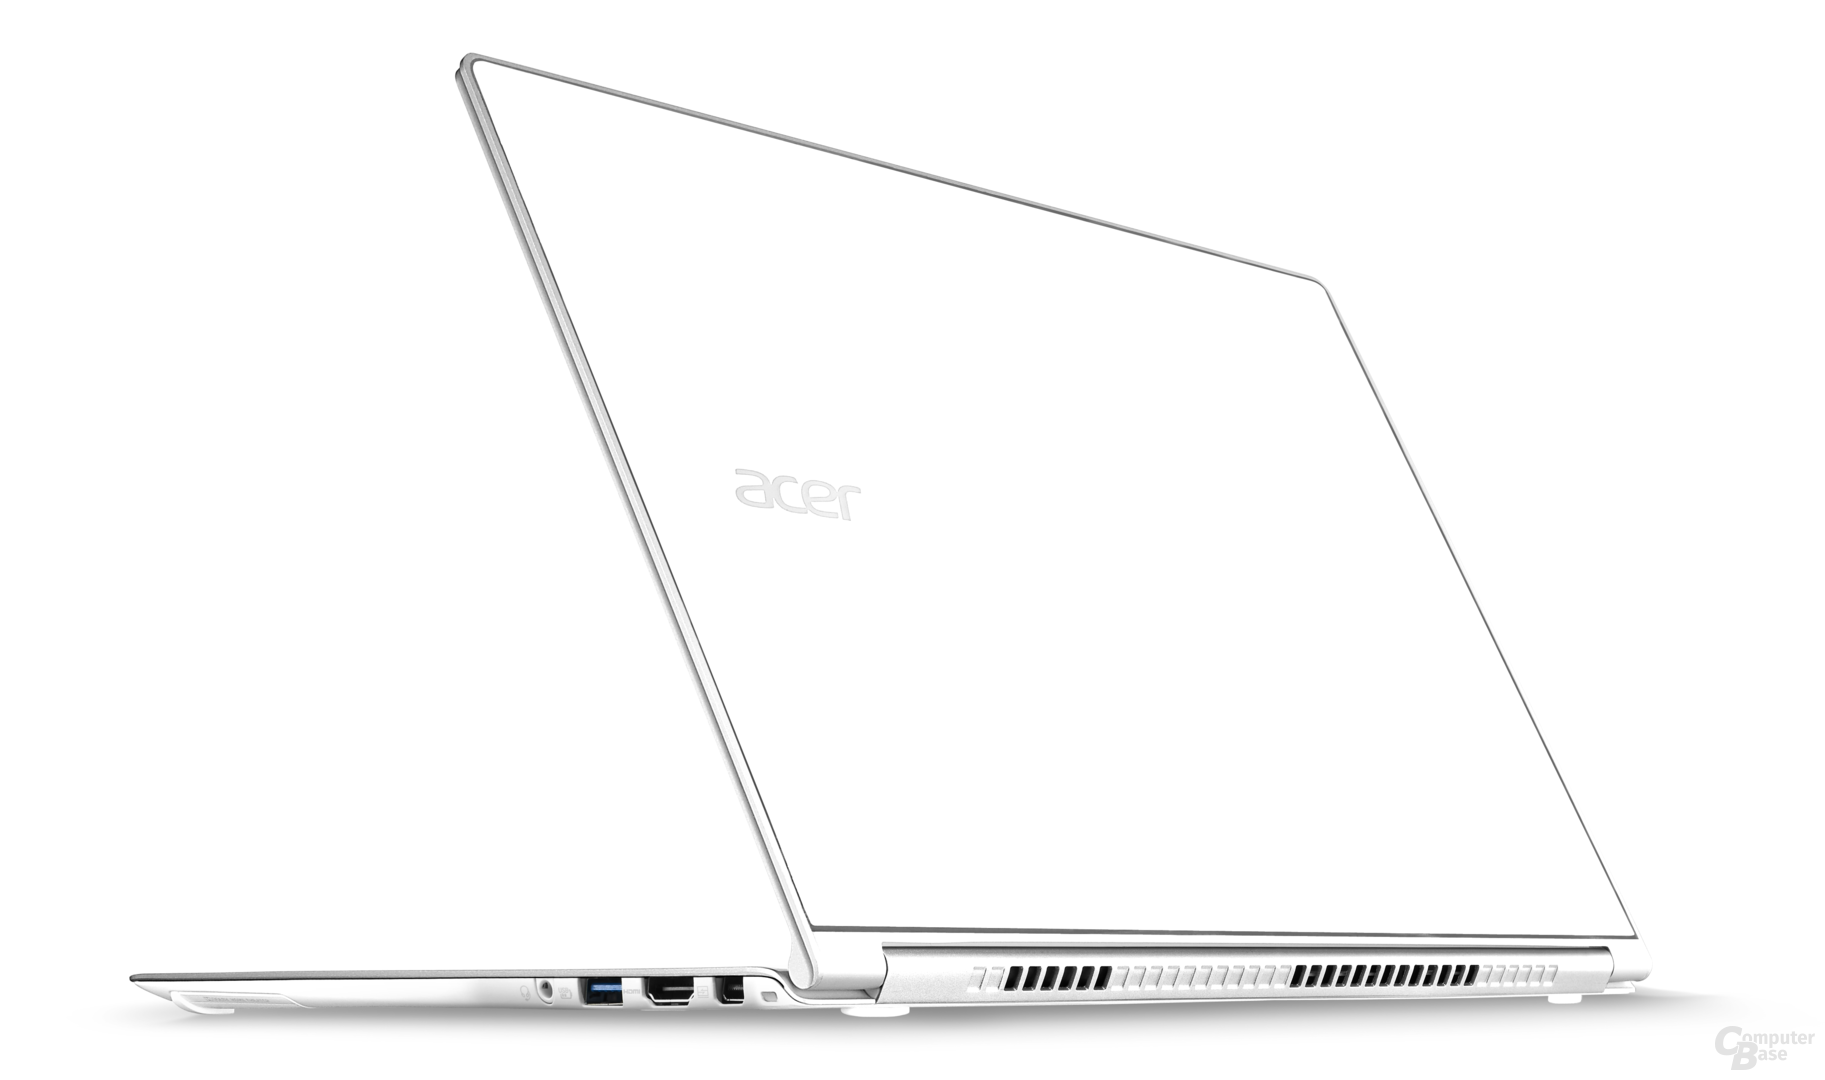 Acer Aspire S7 2. Generation